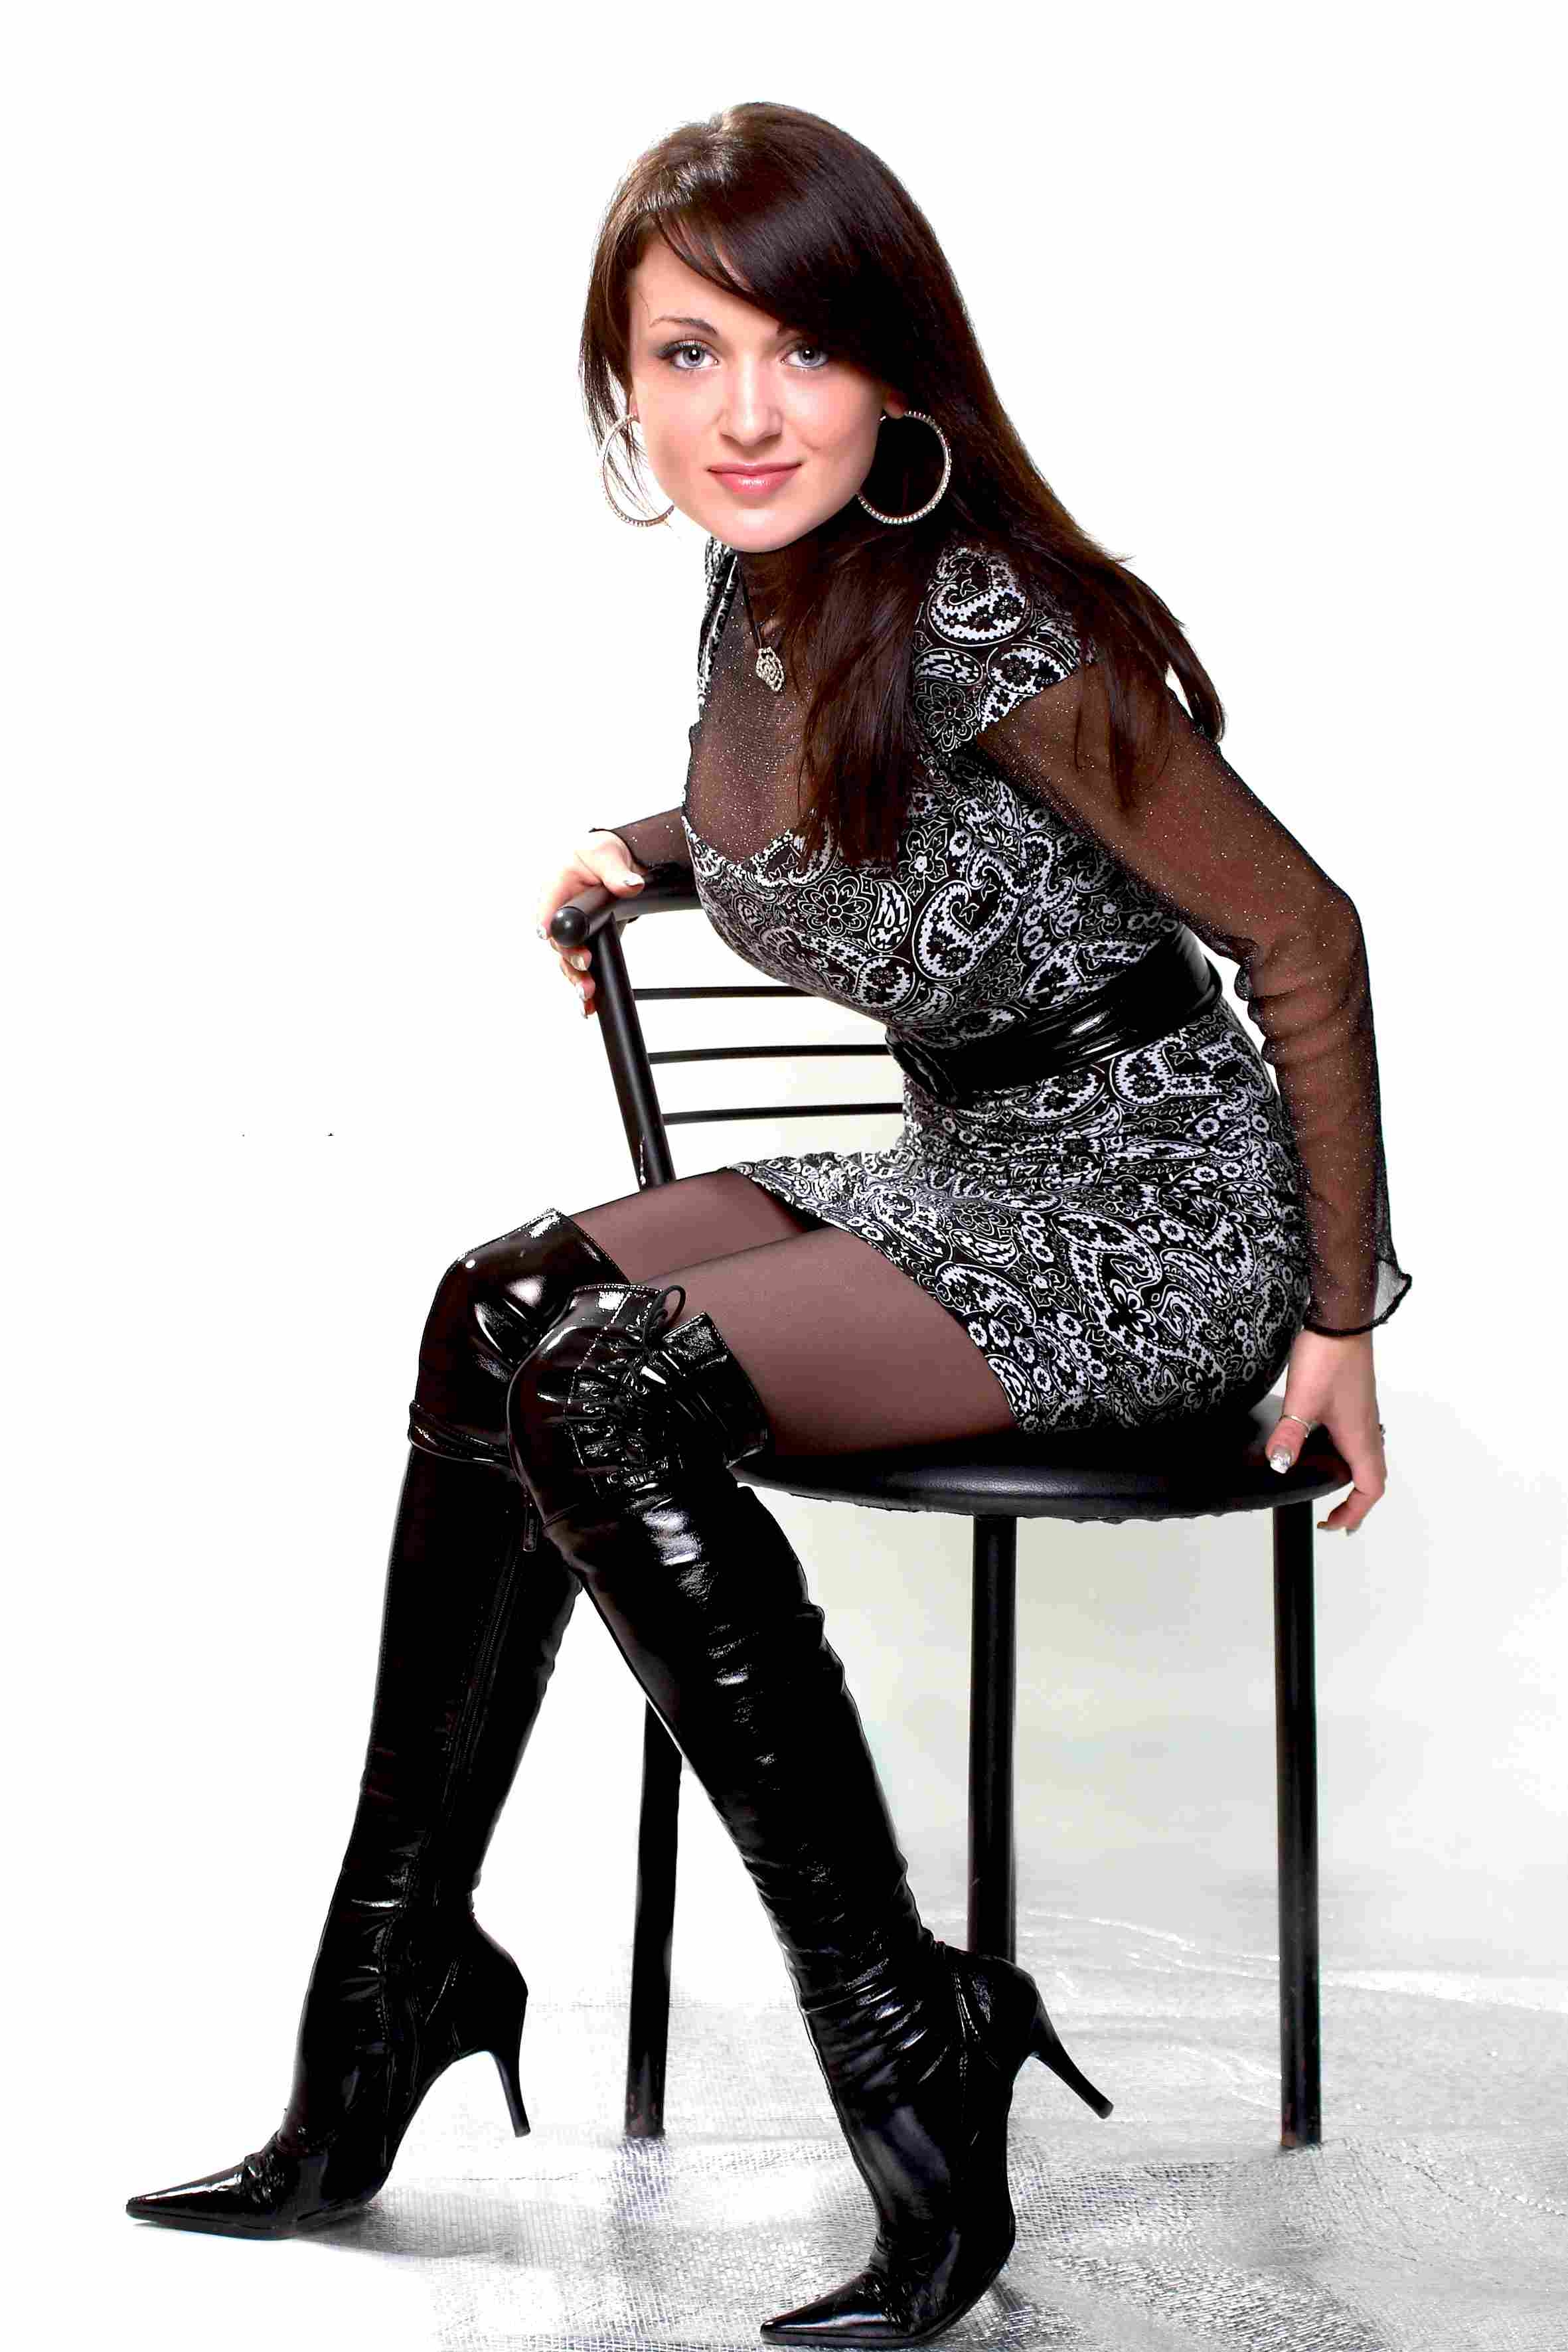 venus local dating agency in mariupol ukraine Generationlove works with several local dating for ukraine woman marianna from russia, you start a dating with several local marriage mariupol marriage agency.